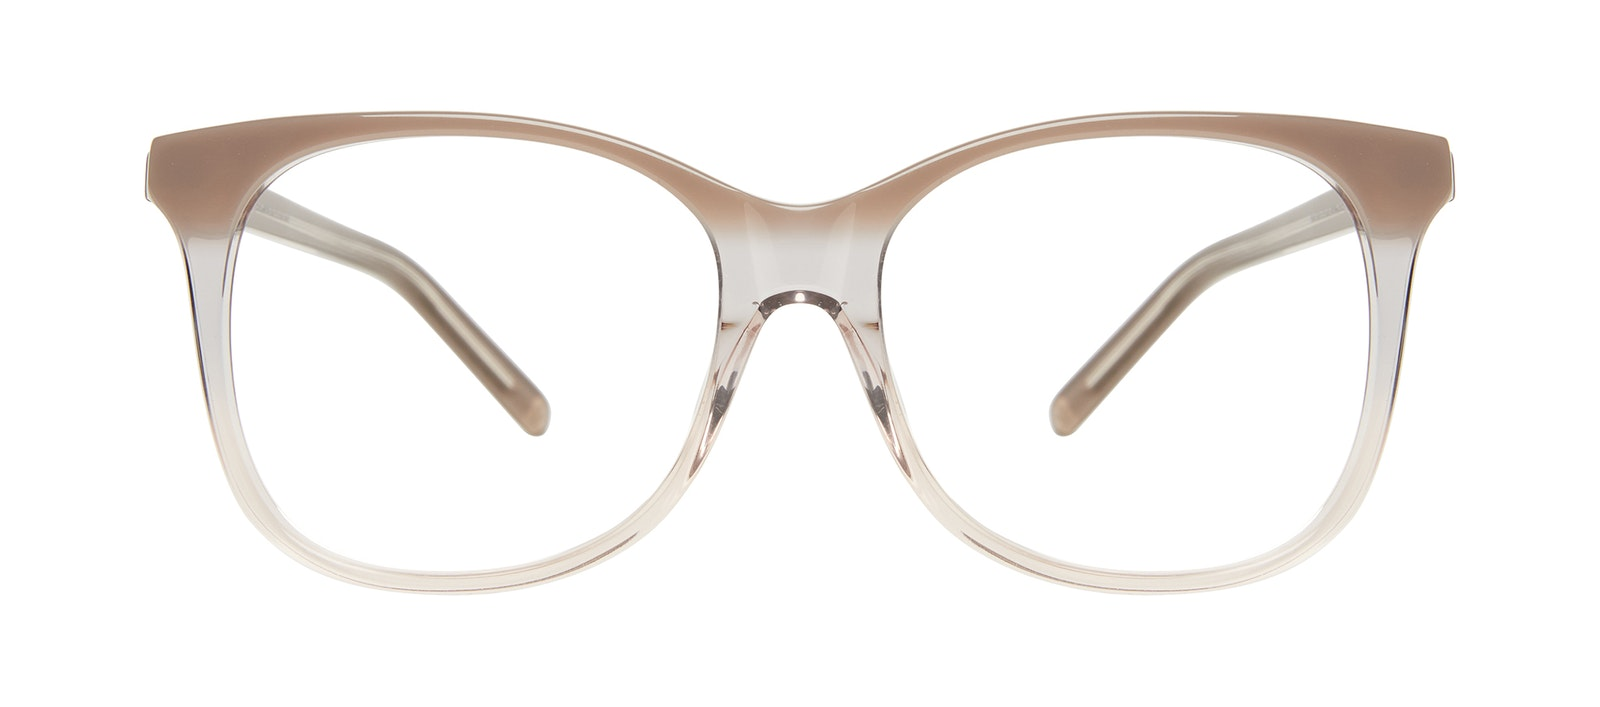 Affordable Fashion Glasses Square Eyeglasses Women Bloom Smokey Ombré Front